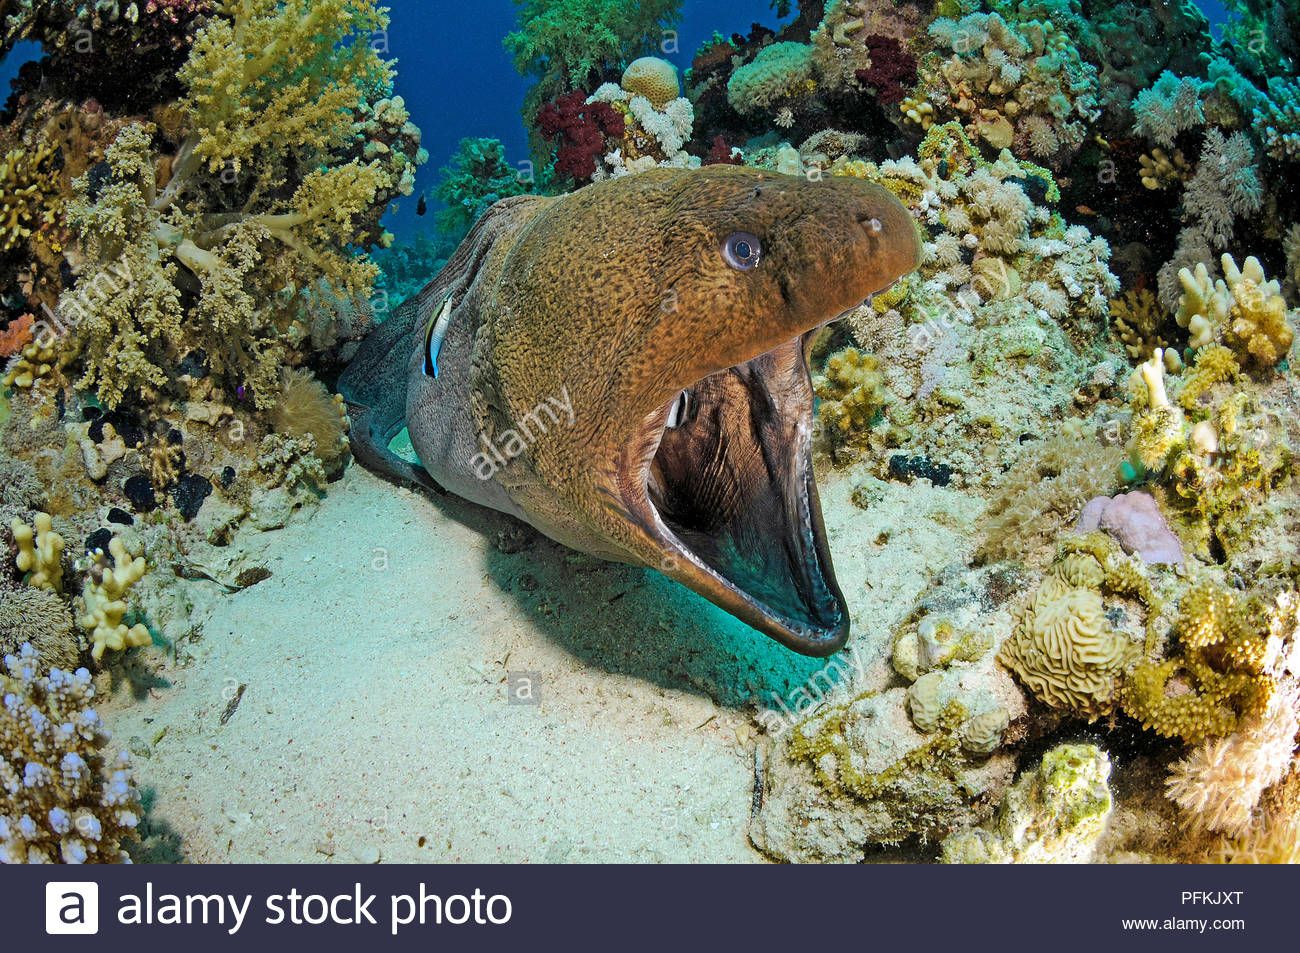 Cleaner fish (Labroides dimidiatus) cleans a Giant Moray (Gymnothorax javiancus), Sharm el Sheikh, Sinai, Egypt Stock Photo